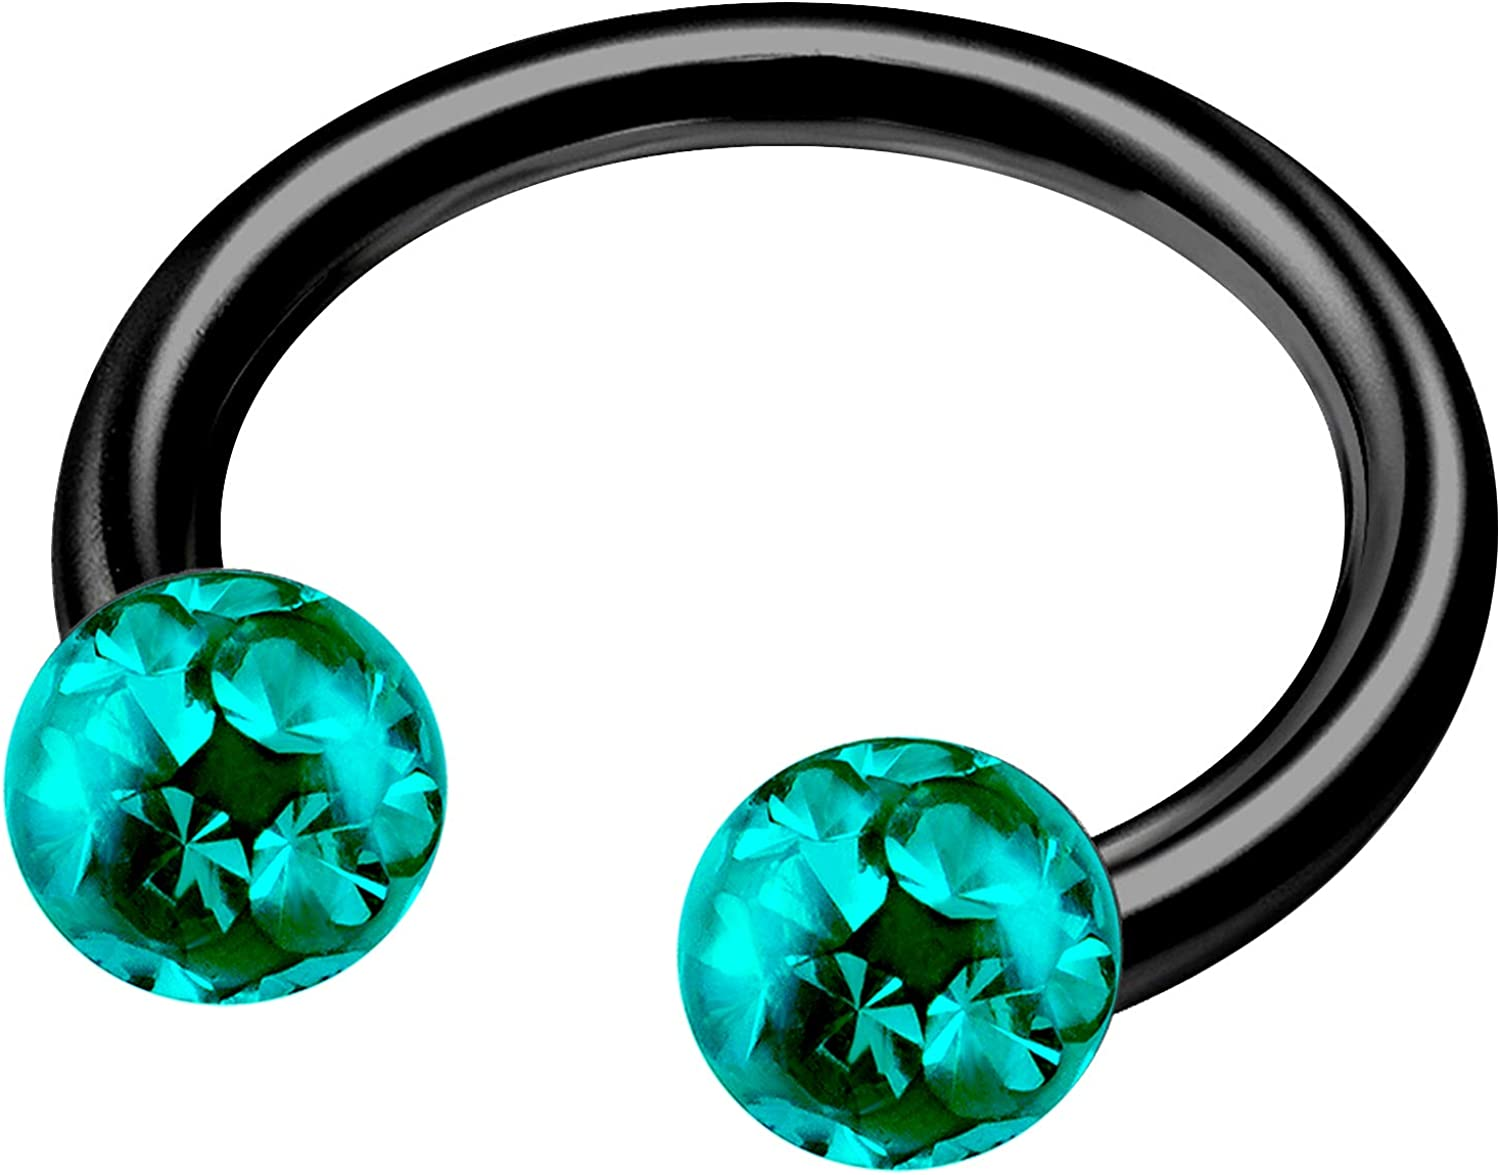 MATIGA Anodized Titanium 5/16 8mm 14g Horseshoe Earrings Piercing Jewelry Eyebrow Nose Tragus Rook 4mm Ferido Crystal More Choices